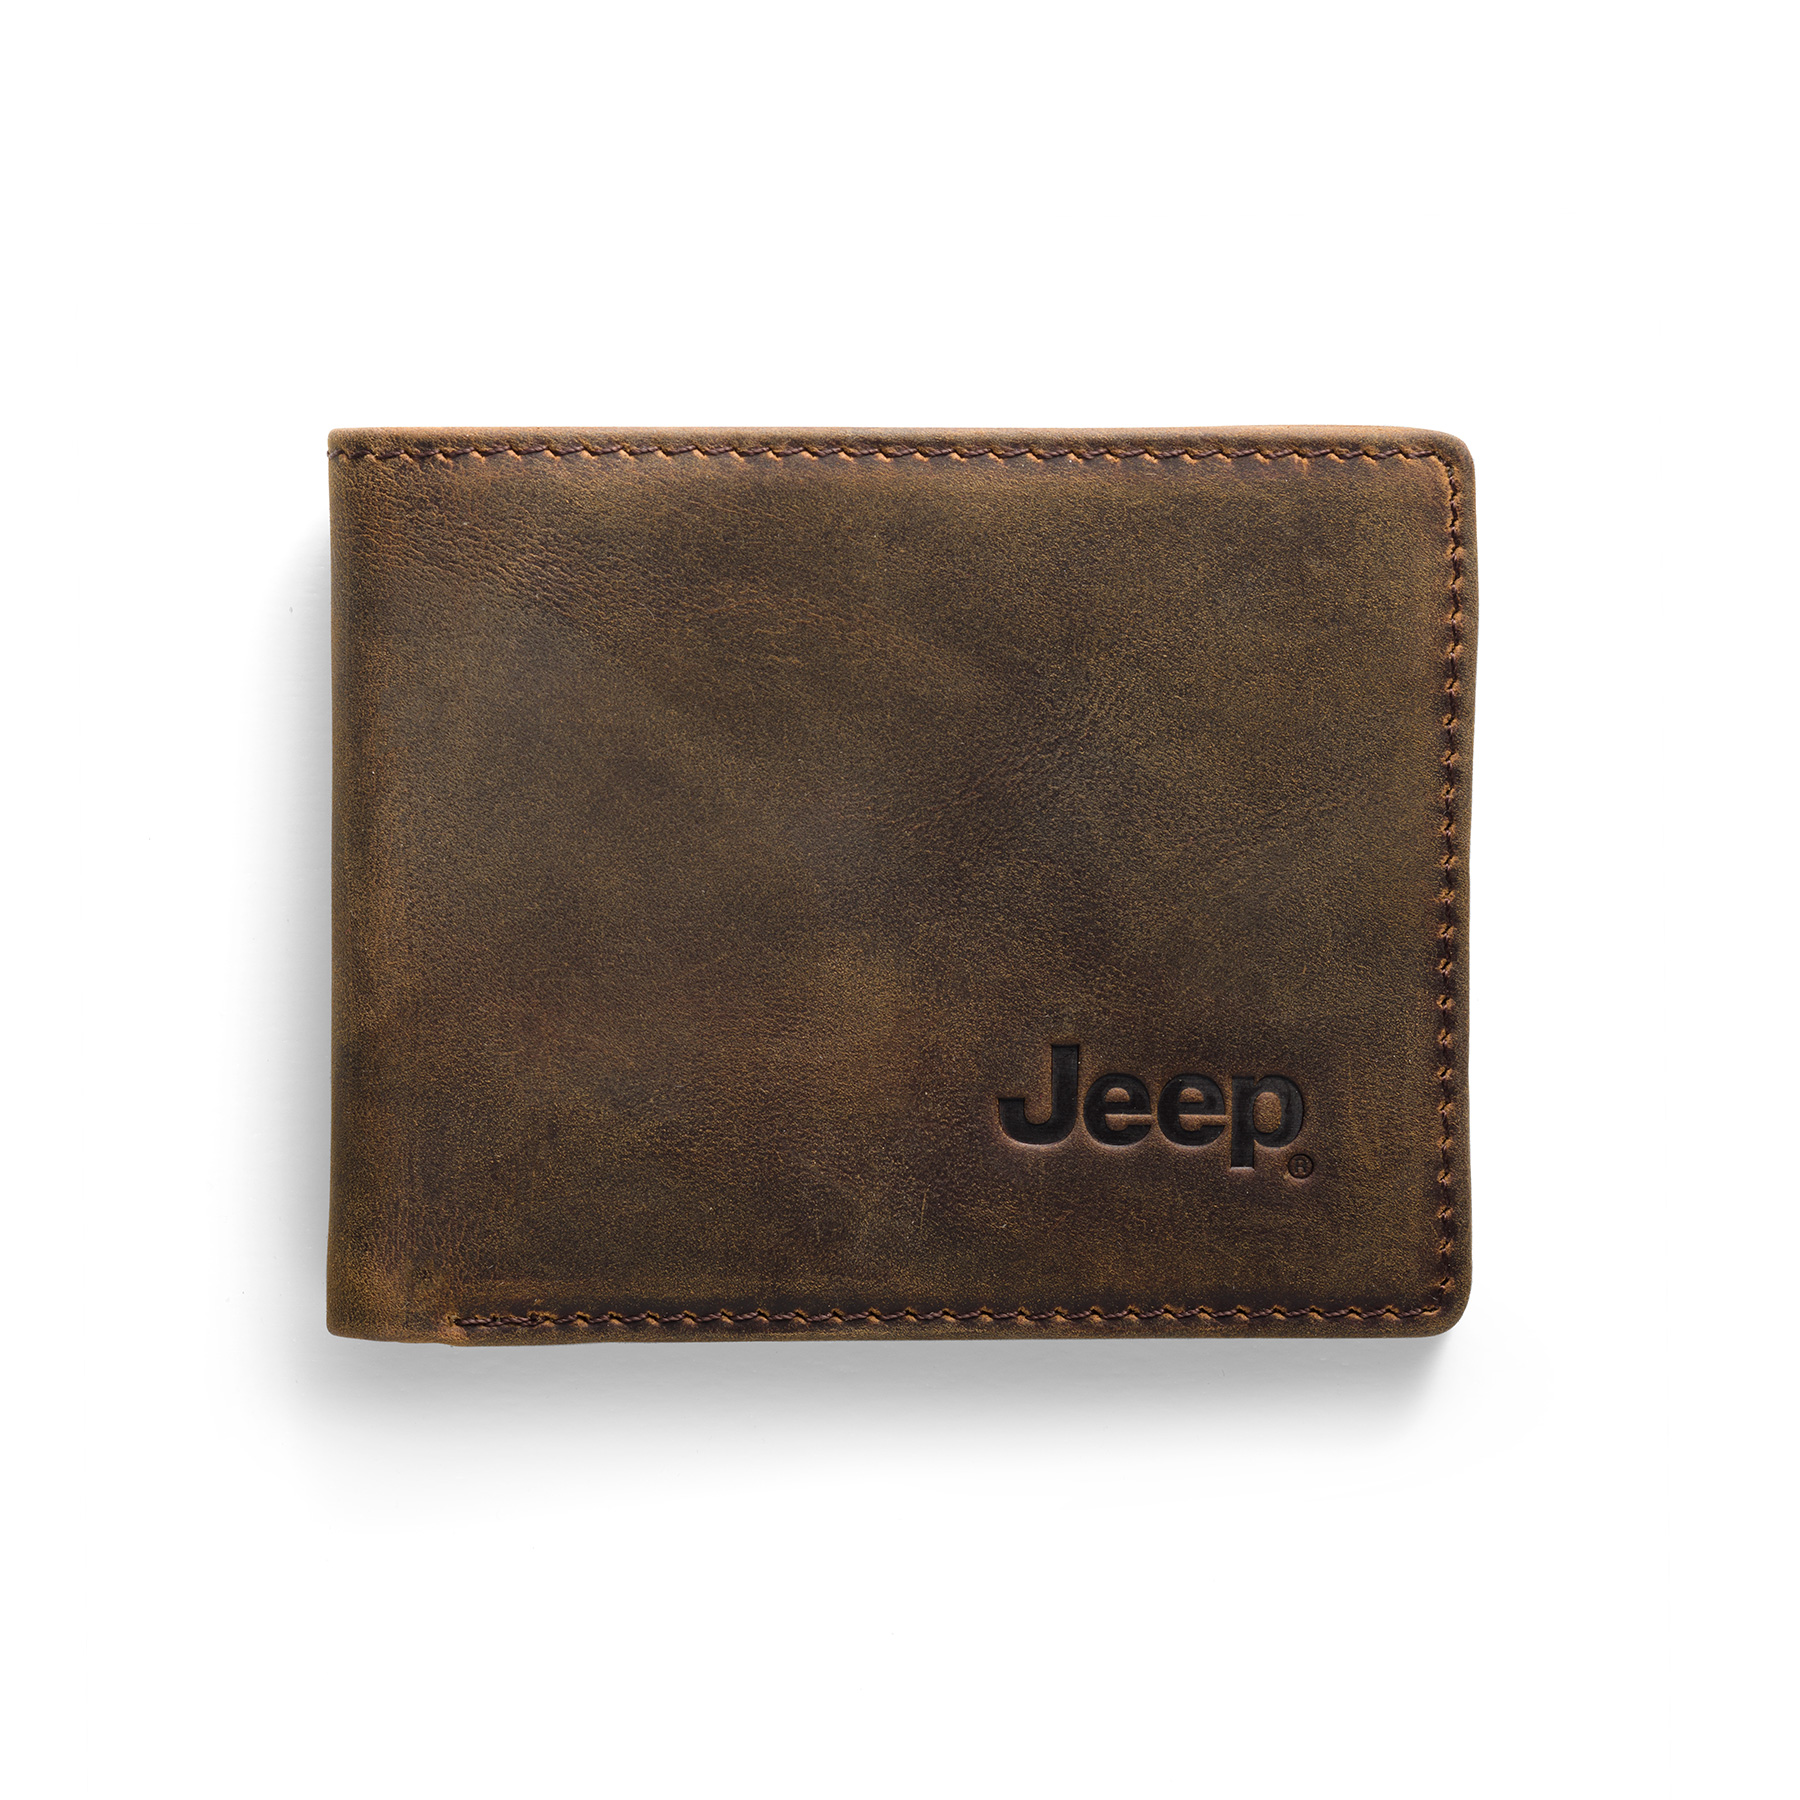 Fca Catalogue Jeep Leather Wallet